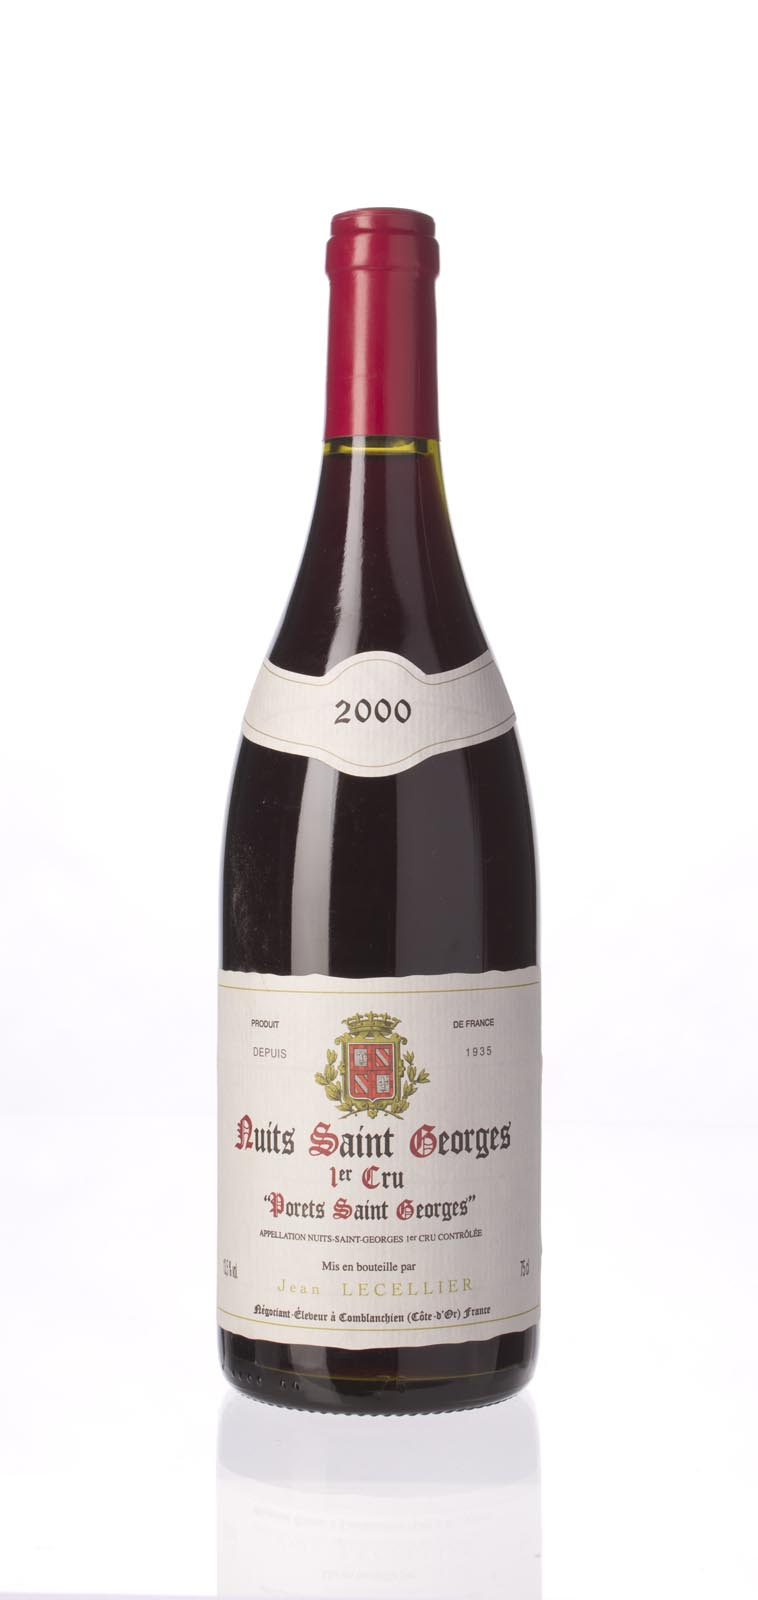 Jean Lecellier Nuits St. Georges les Porets St. Georges 2000, 750ml () from The BPW - Merchants of rare and fine wines.